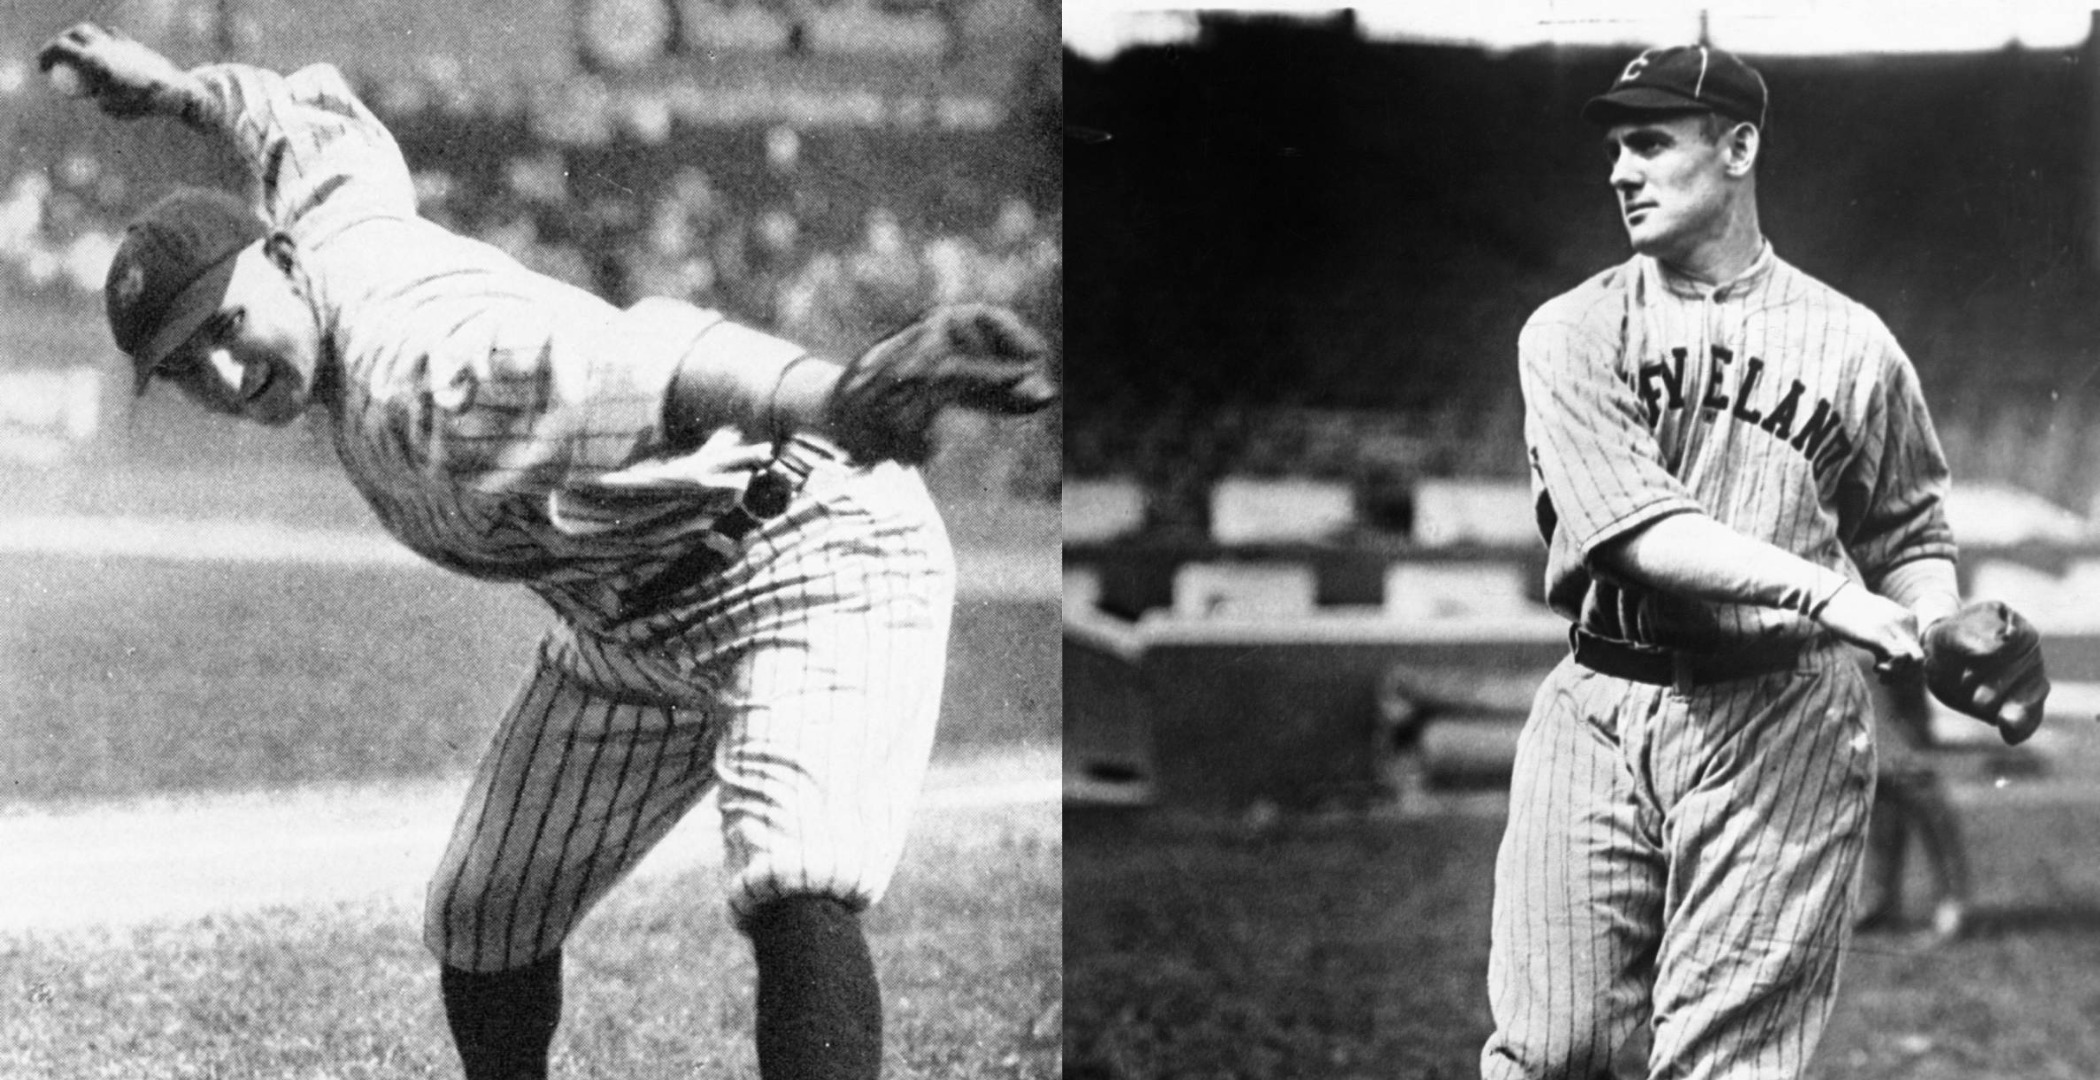 New York Yankees pitcher Carl Mays (L) said he didn't feel guilty for accidently killing Cleveland infielder Ray Chapman.